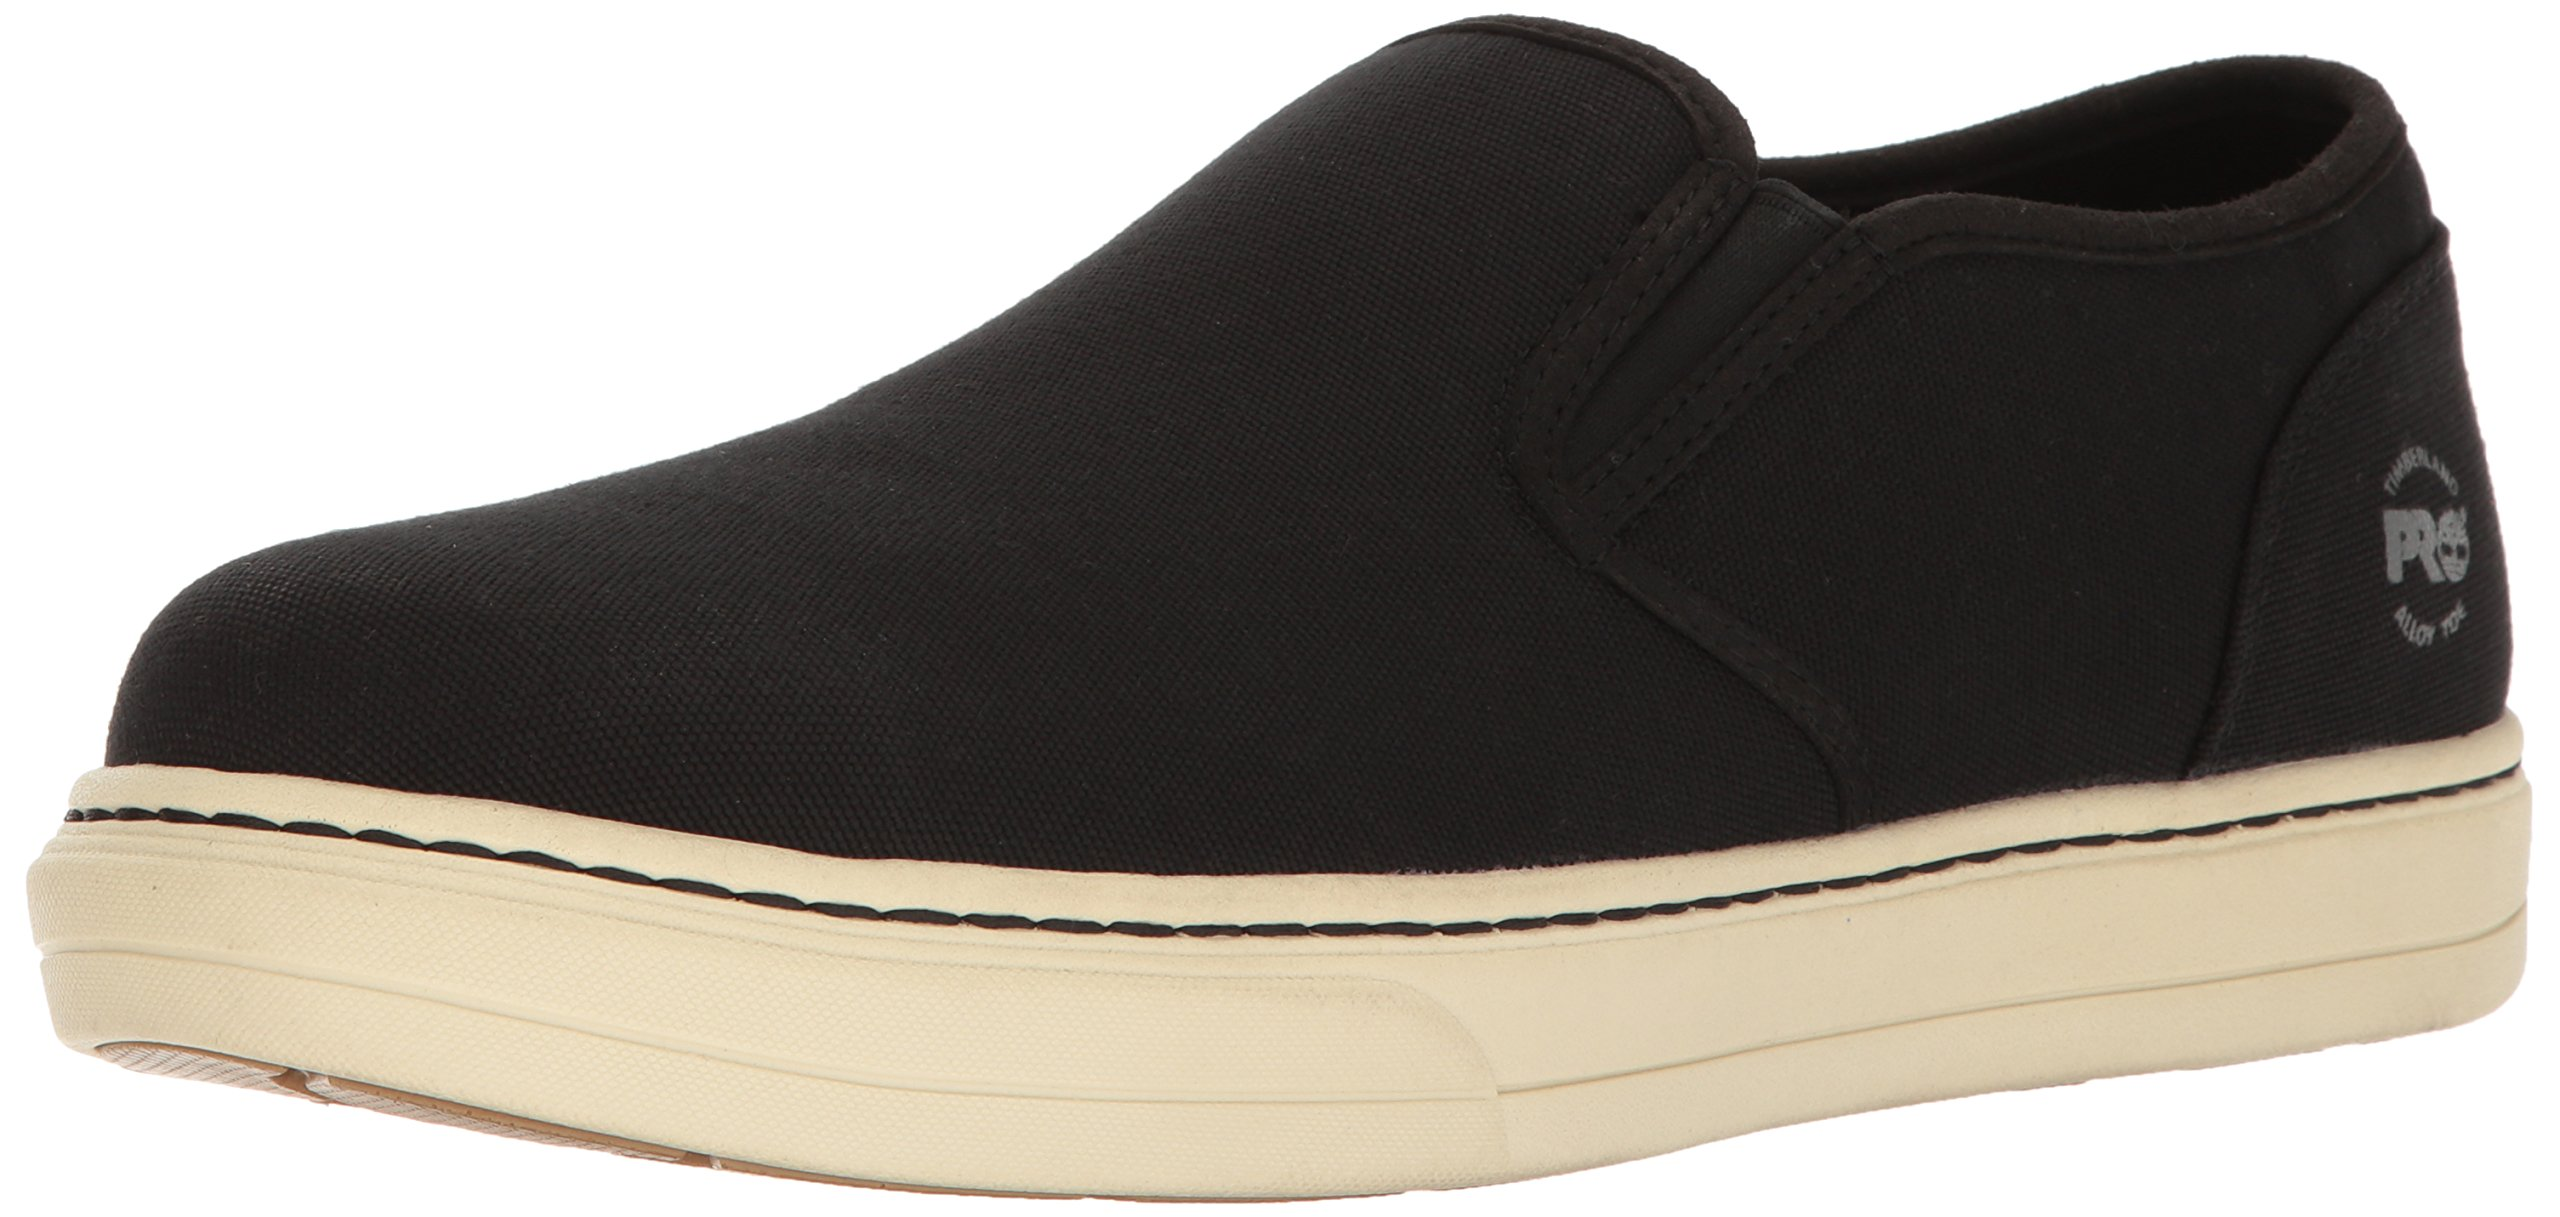 f3195473eaa Timberland PRO Men s Disruptor Slip-on Alloy Safety Toe EH Industrial and  Construction Shoe